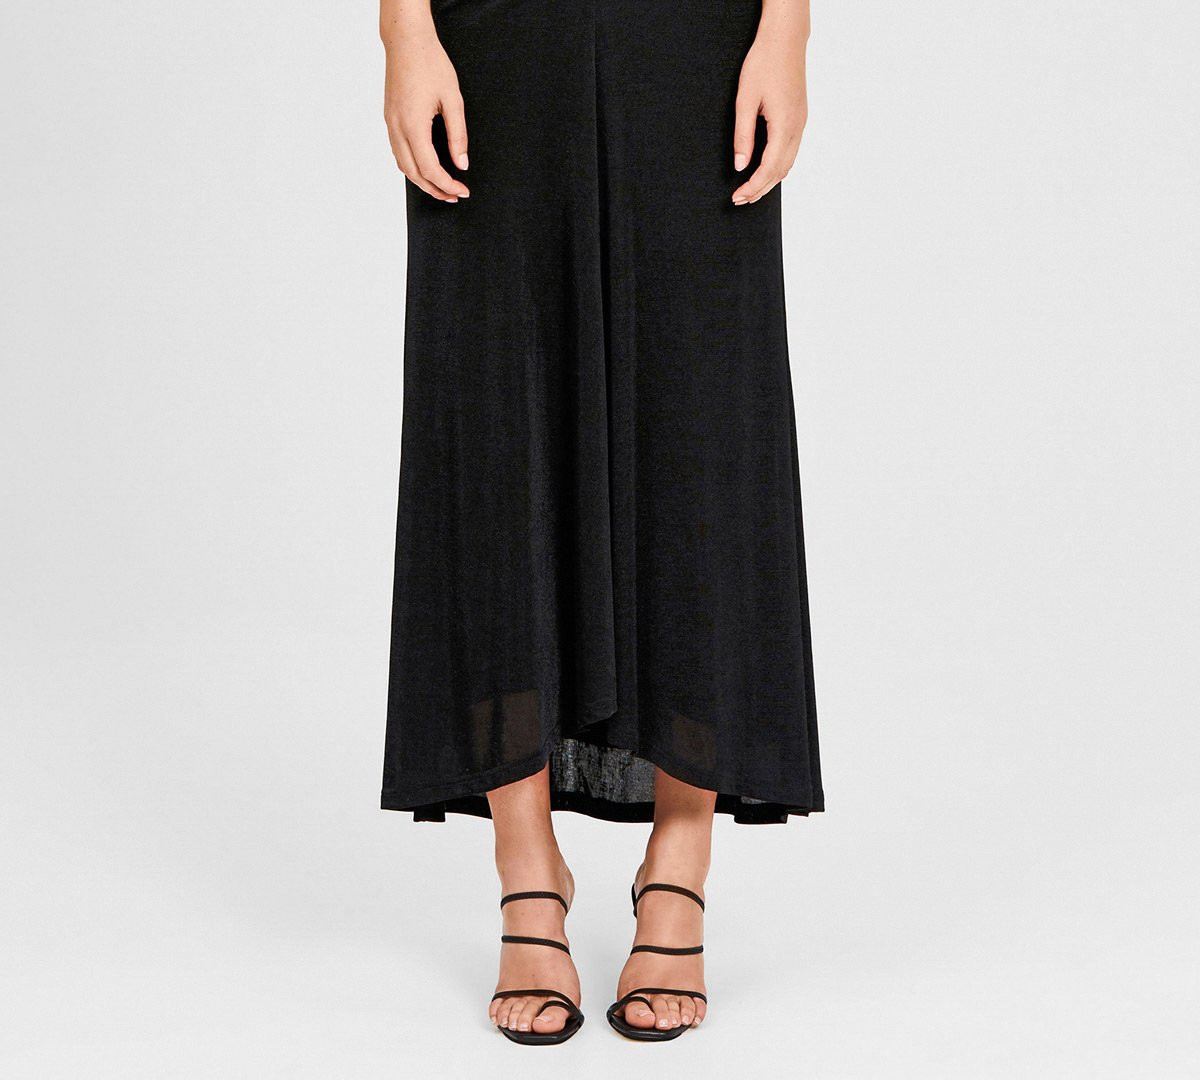 Giselle Black Gown